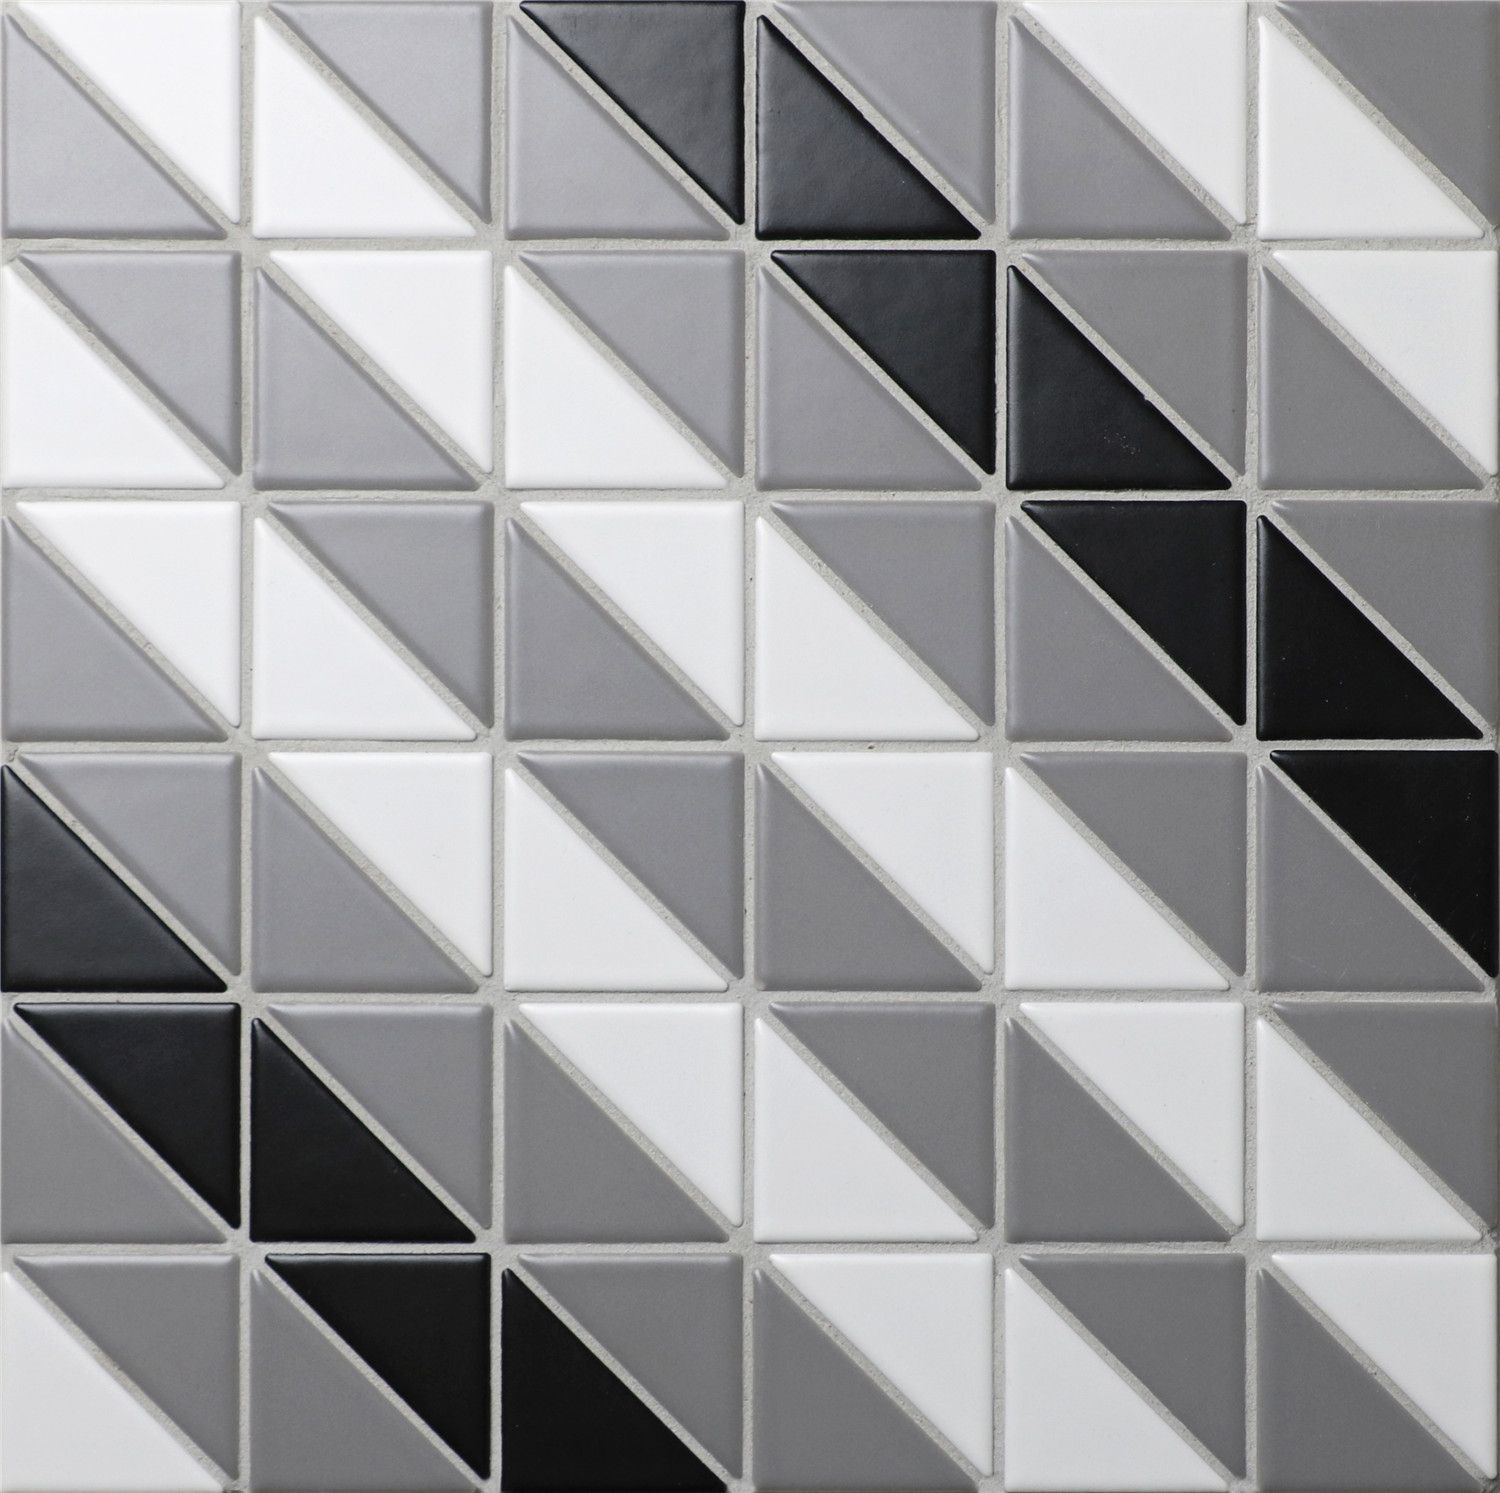 "Classic Diagonal 2"" Triangle Geometric Floor Tiles Sale, white, grey ..."